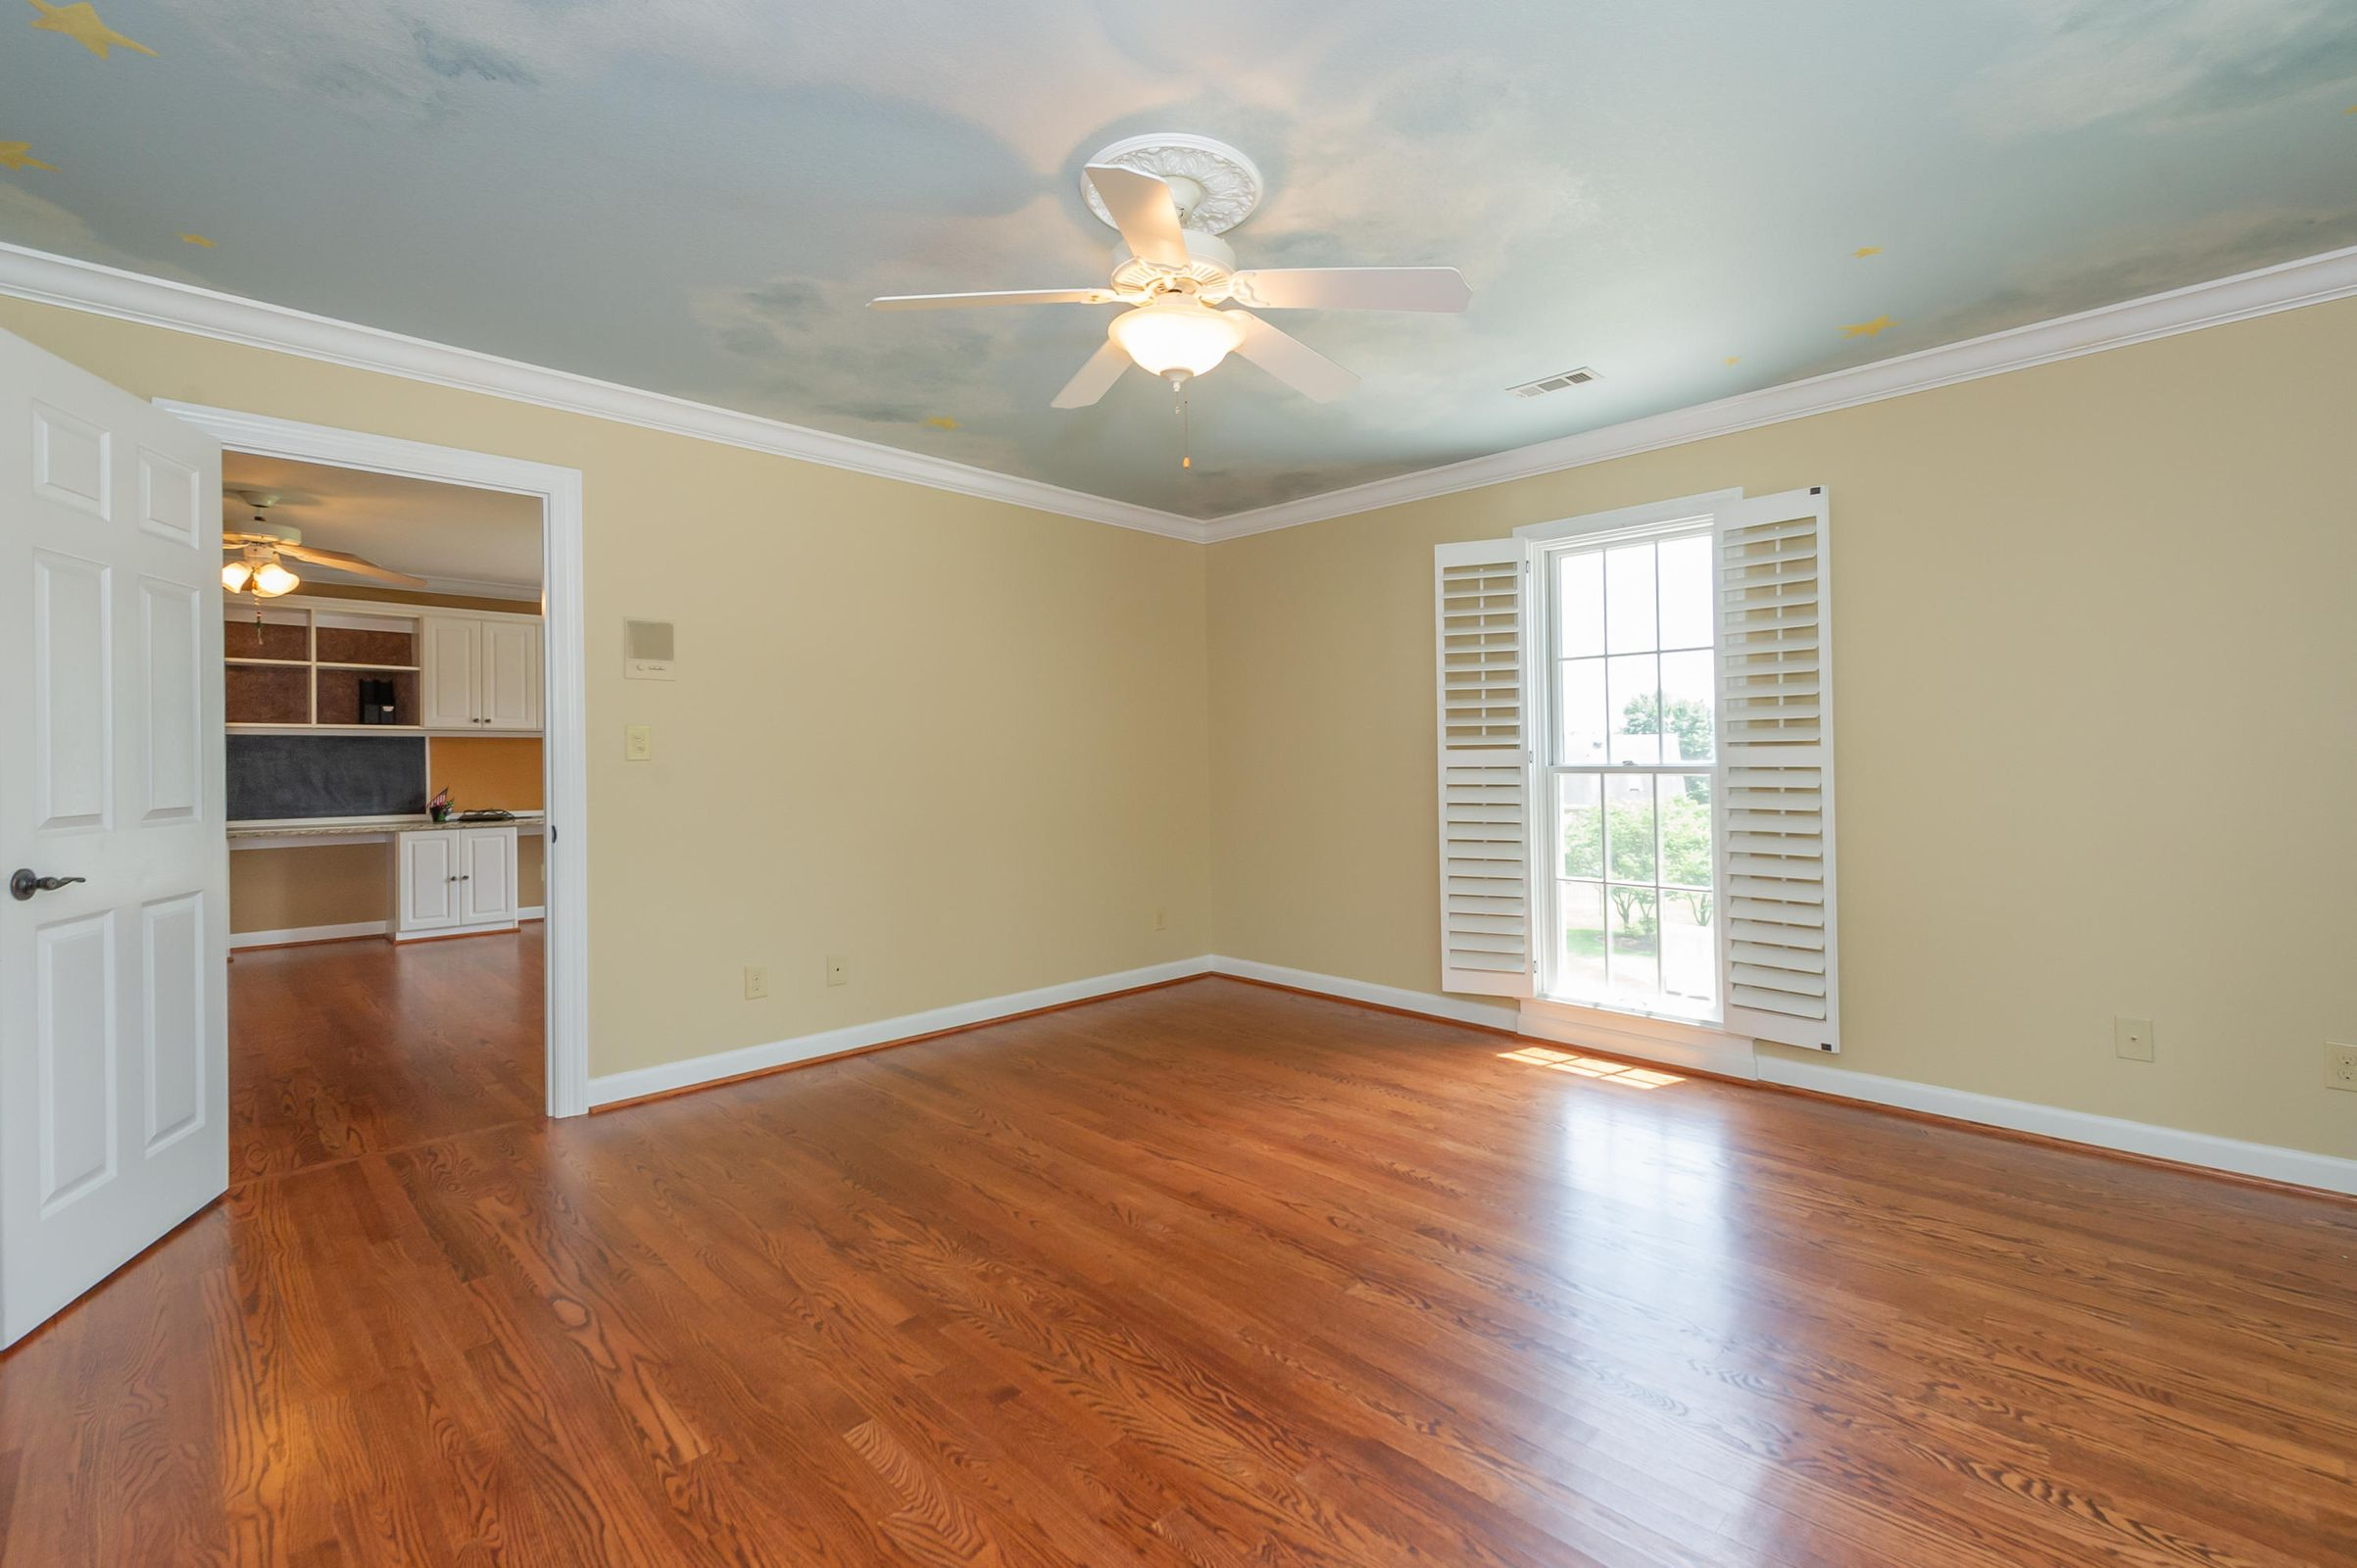 4TH BR IN 2ND FLOOR